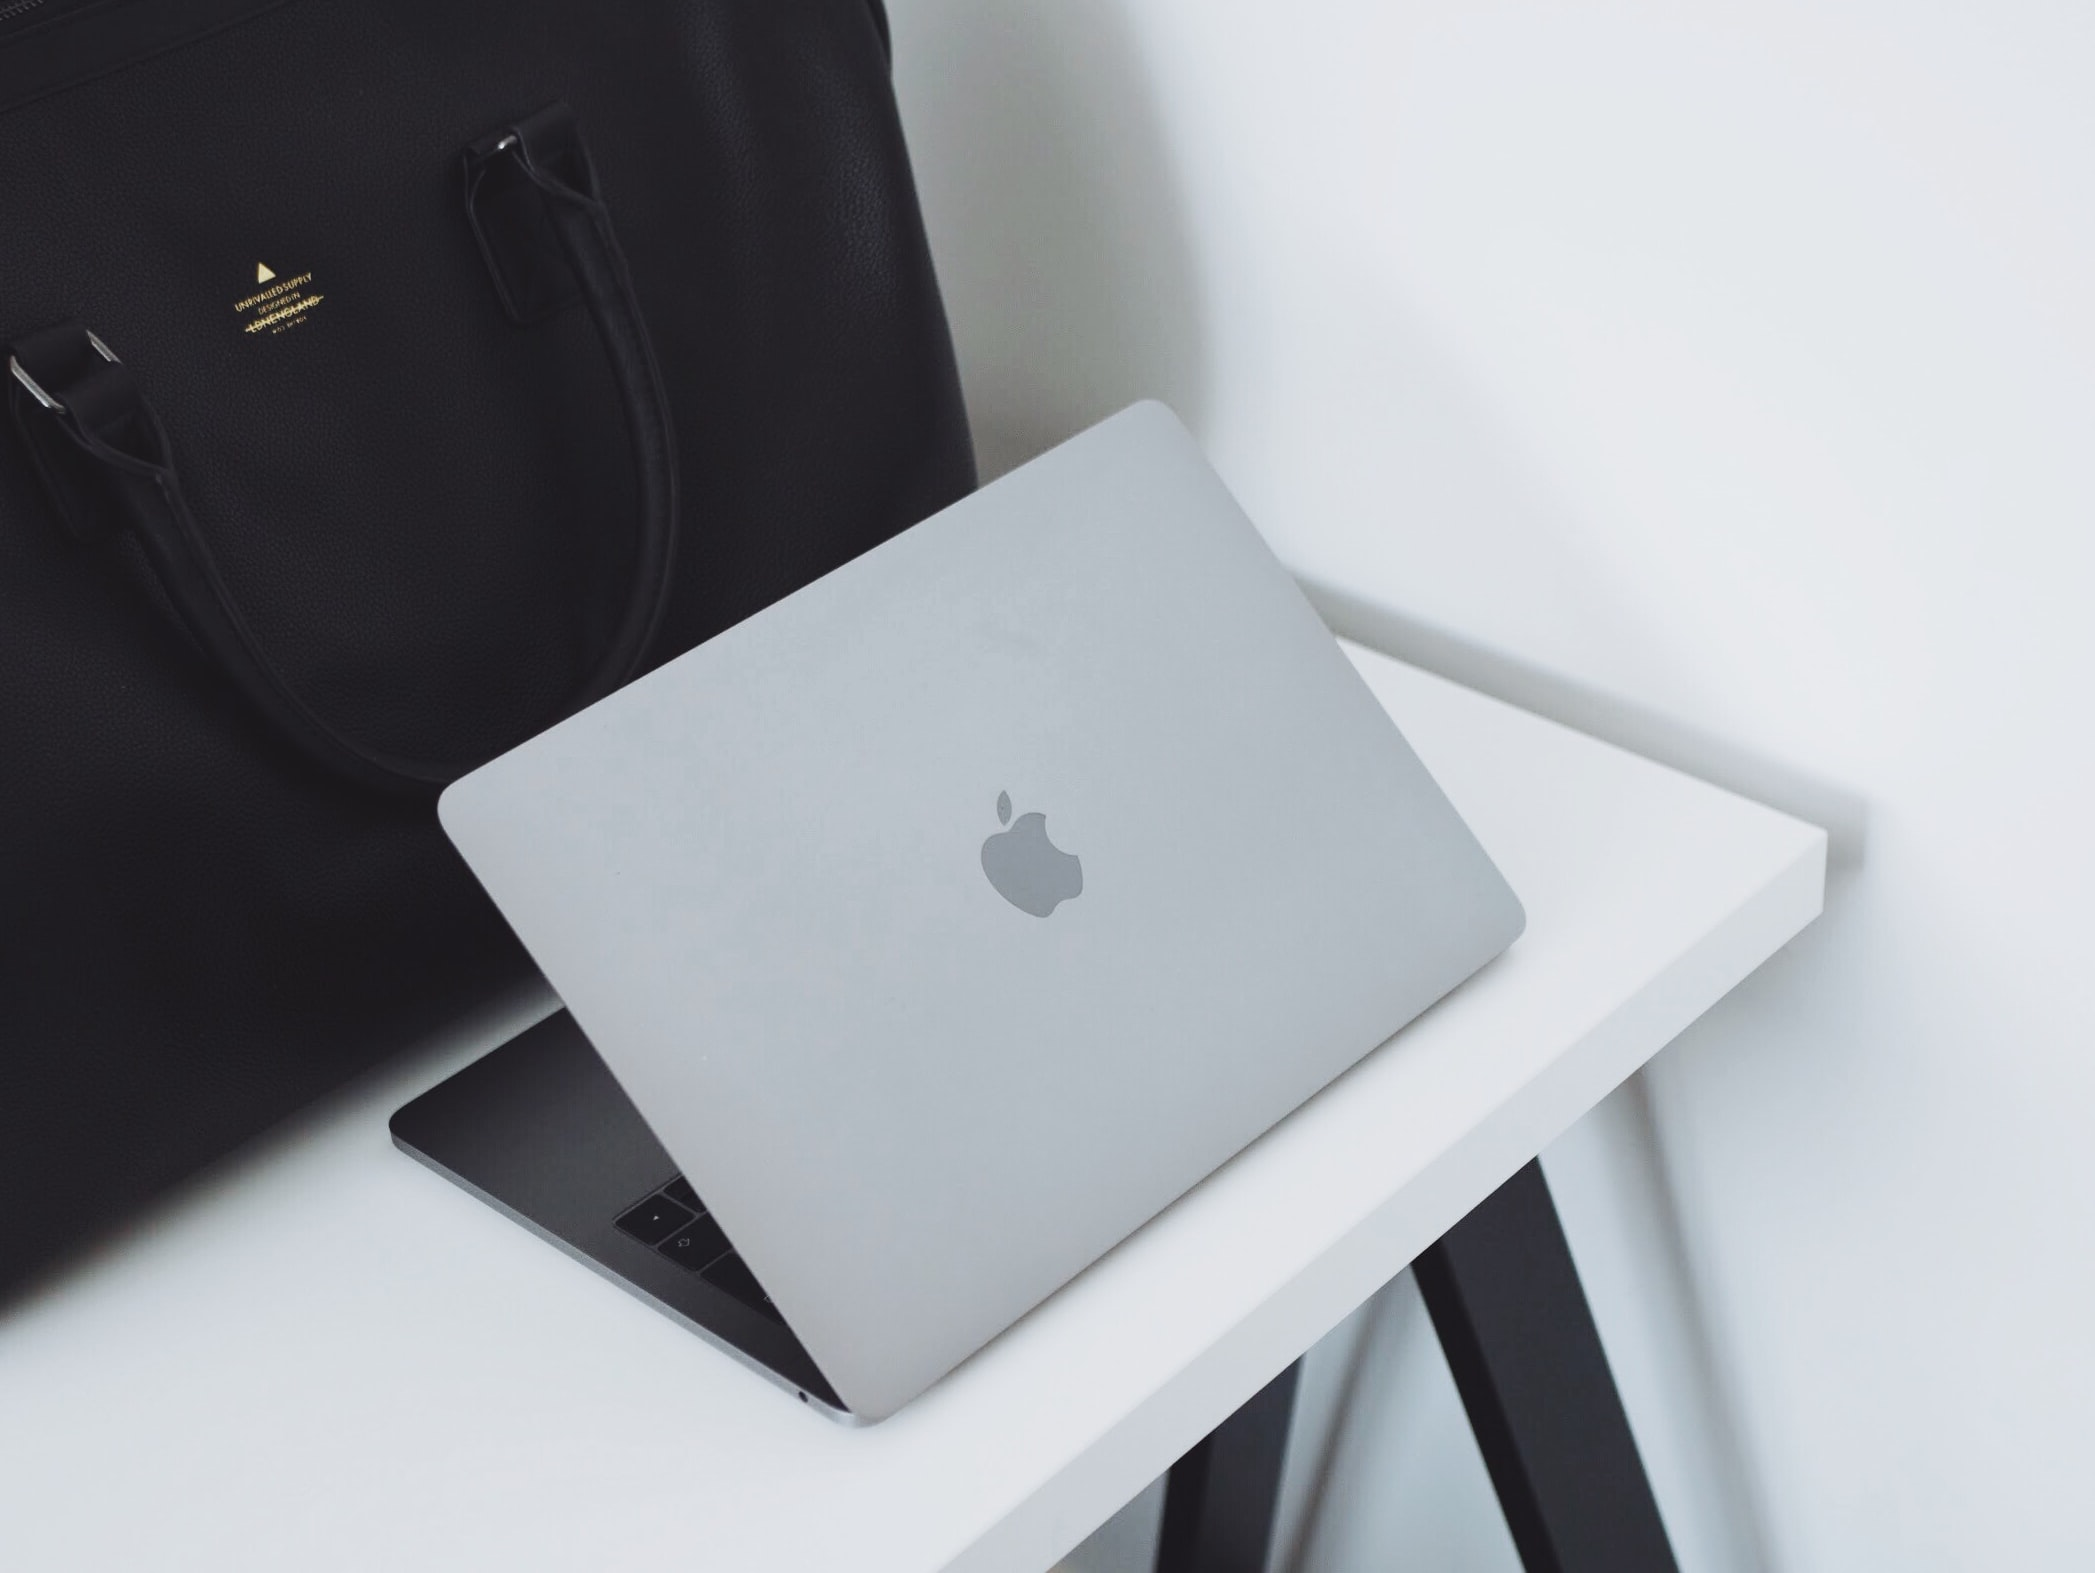 opened MacBook on table